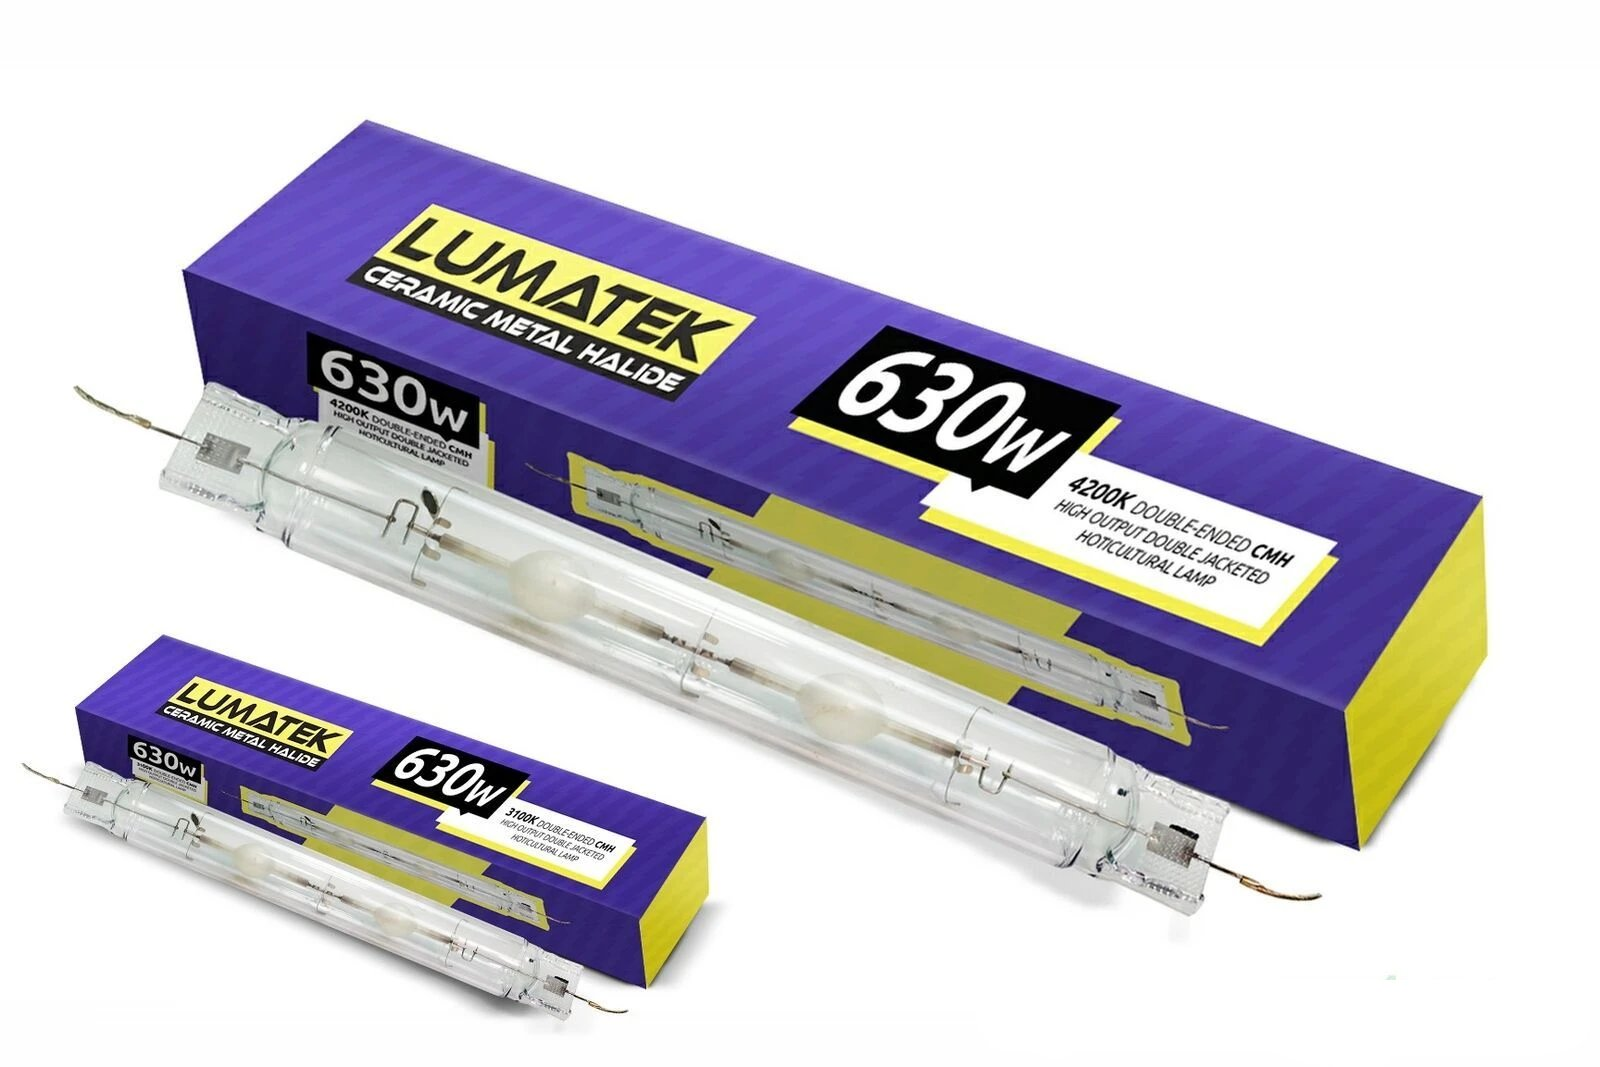 Lumatek 630W 3100k/4200k CMH CDM DE Ceramic Metal Halide Double Ended light Bulb